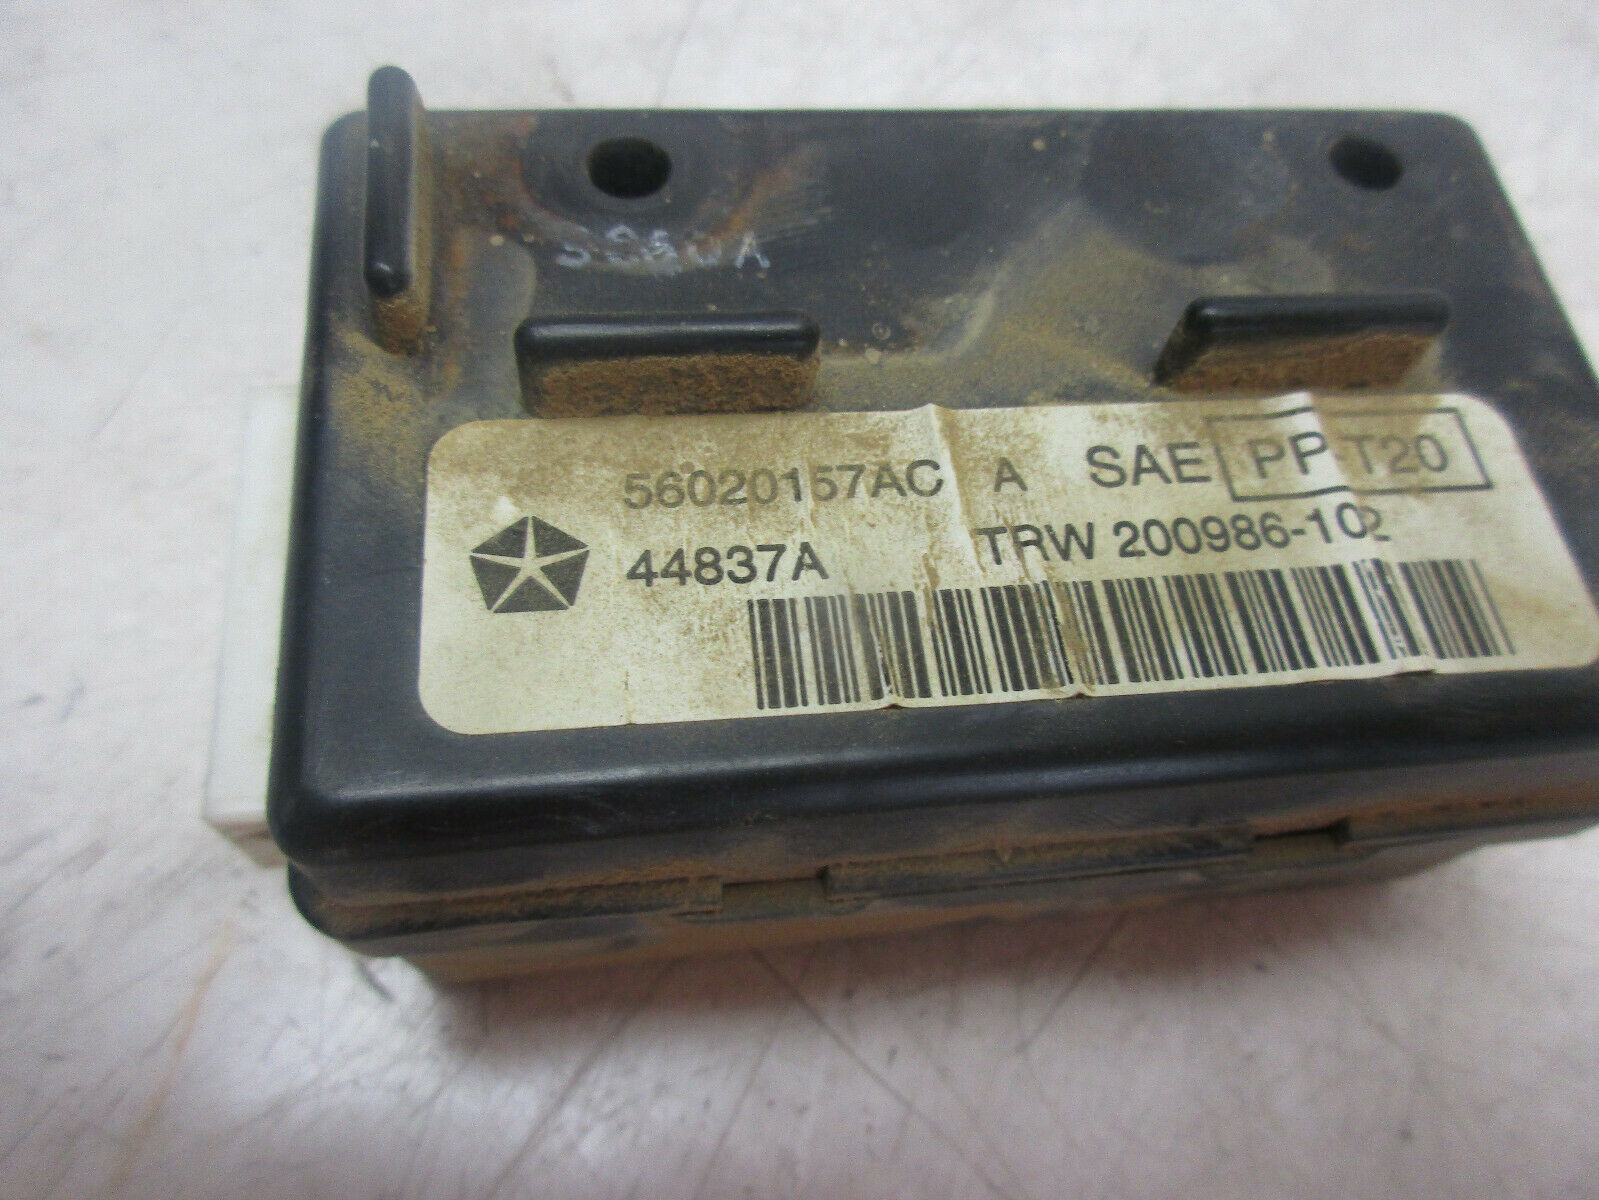 56020157AC TIMING AND CONTROL MODULE Chrysler